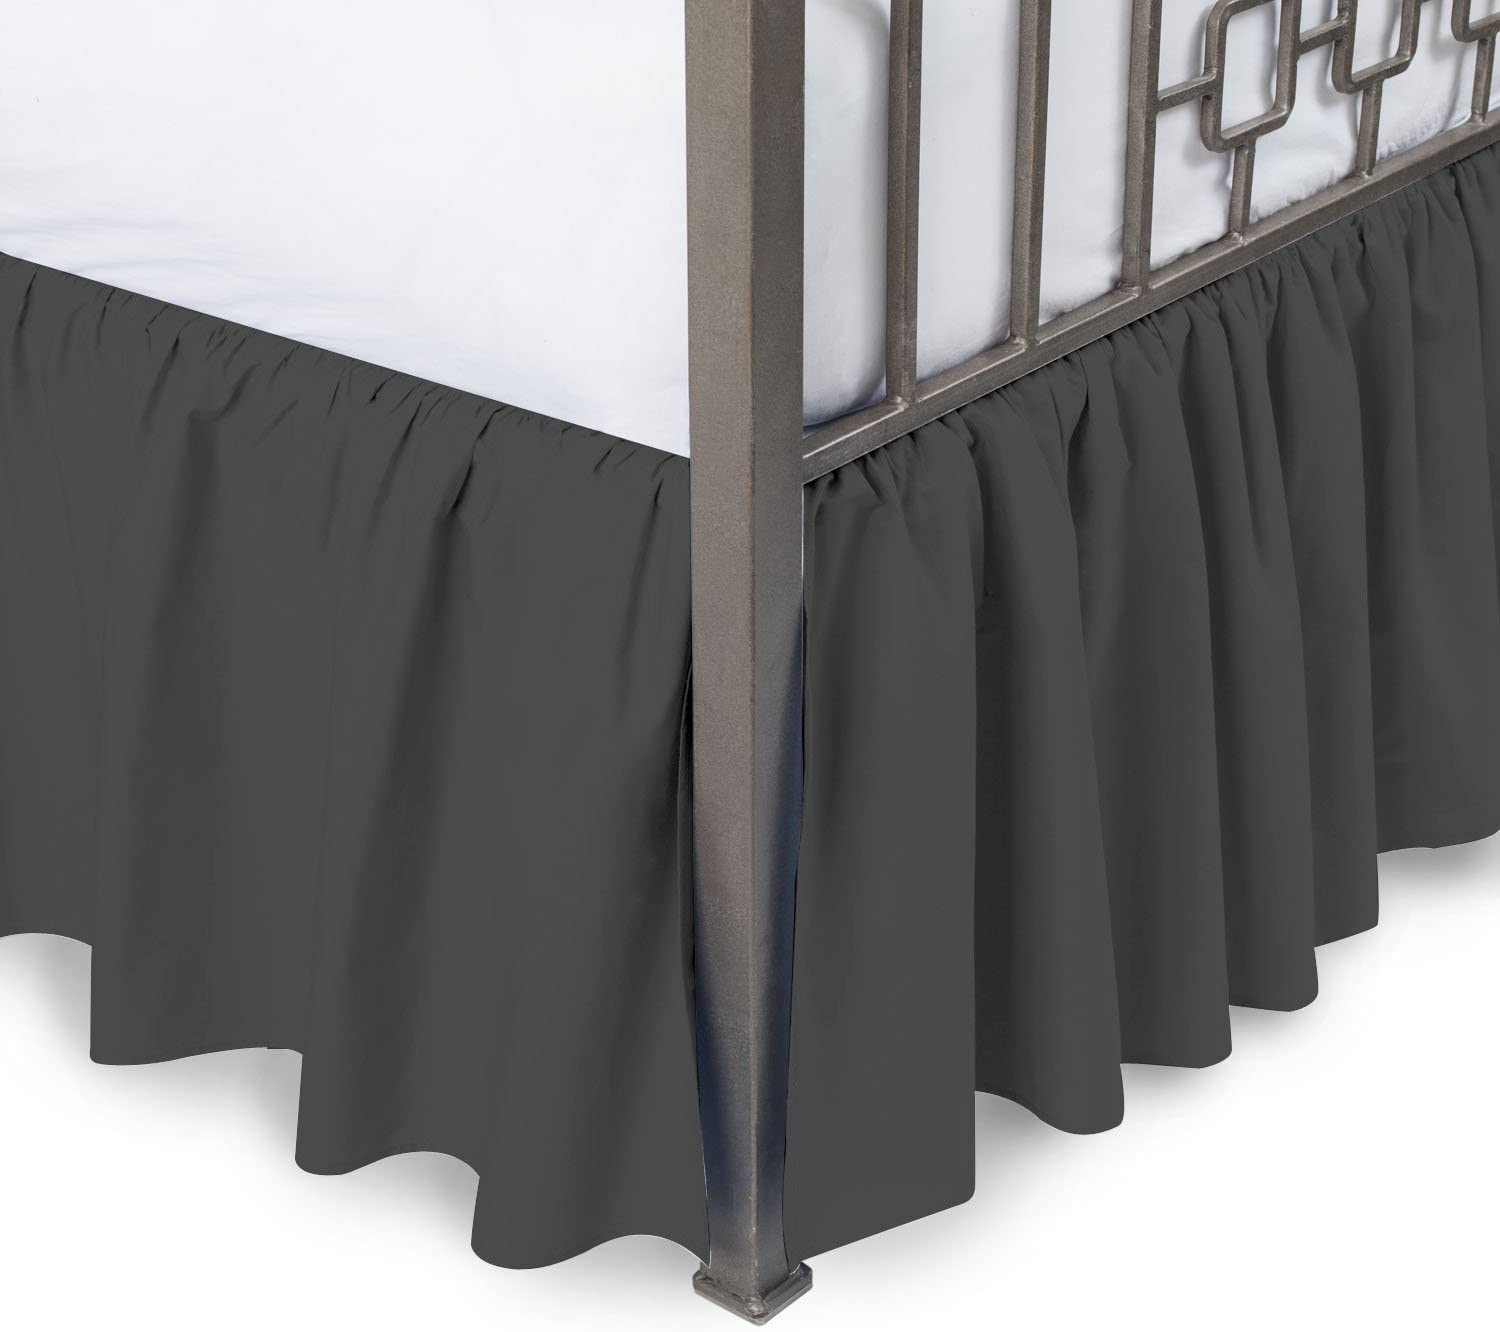 "Comfort Beddings 800TC Hotel Quality Pure Cotton Dust Ruffle Bed Skirt 24"" Drop Length Cotton (Queen - 24"" Drop, Dark Grey)"